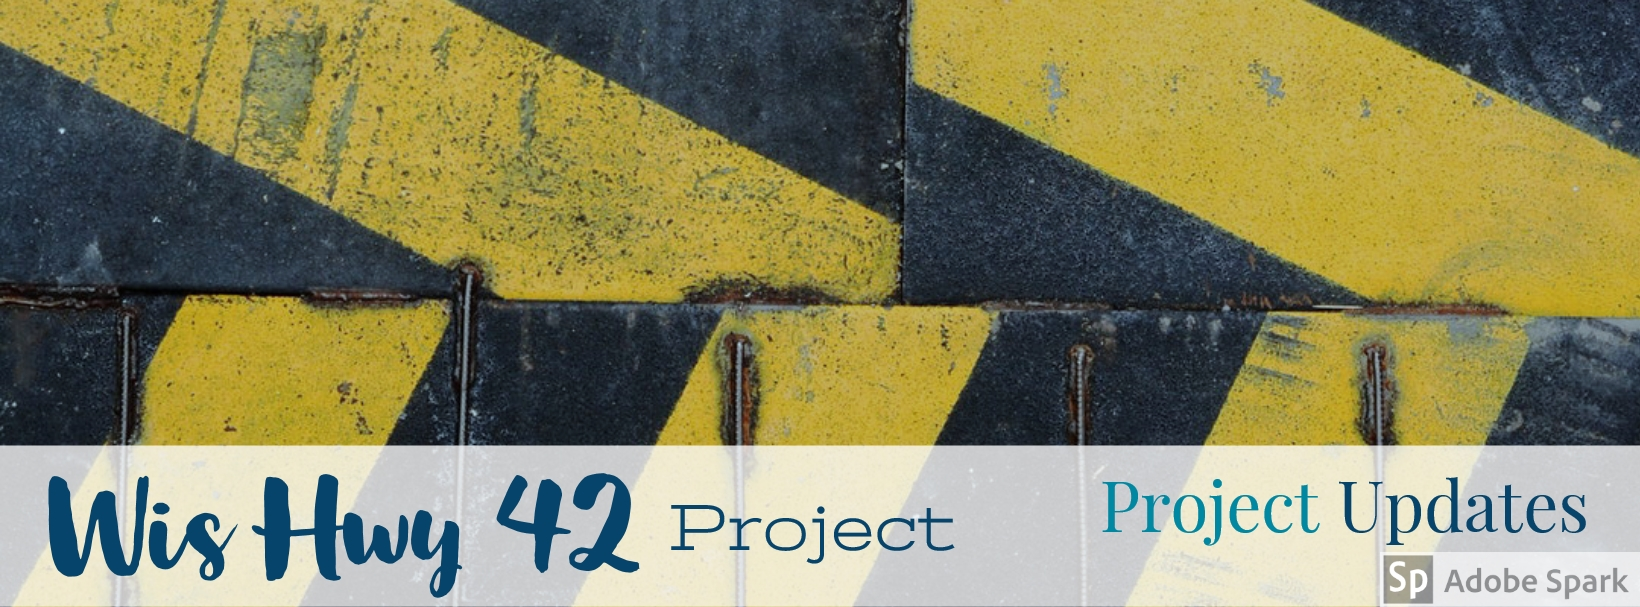 Wis Hwy 42 Project Banner